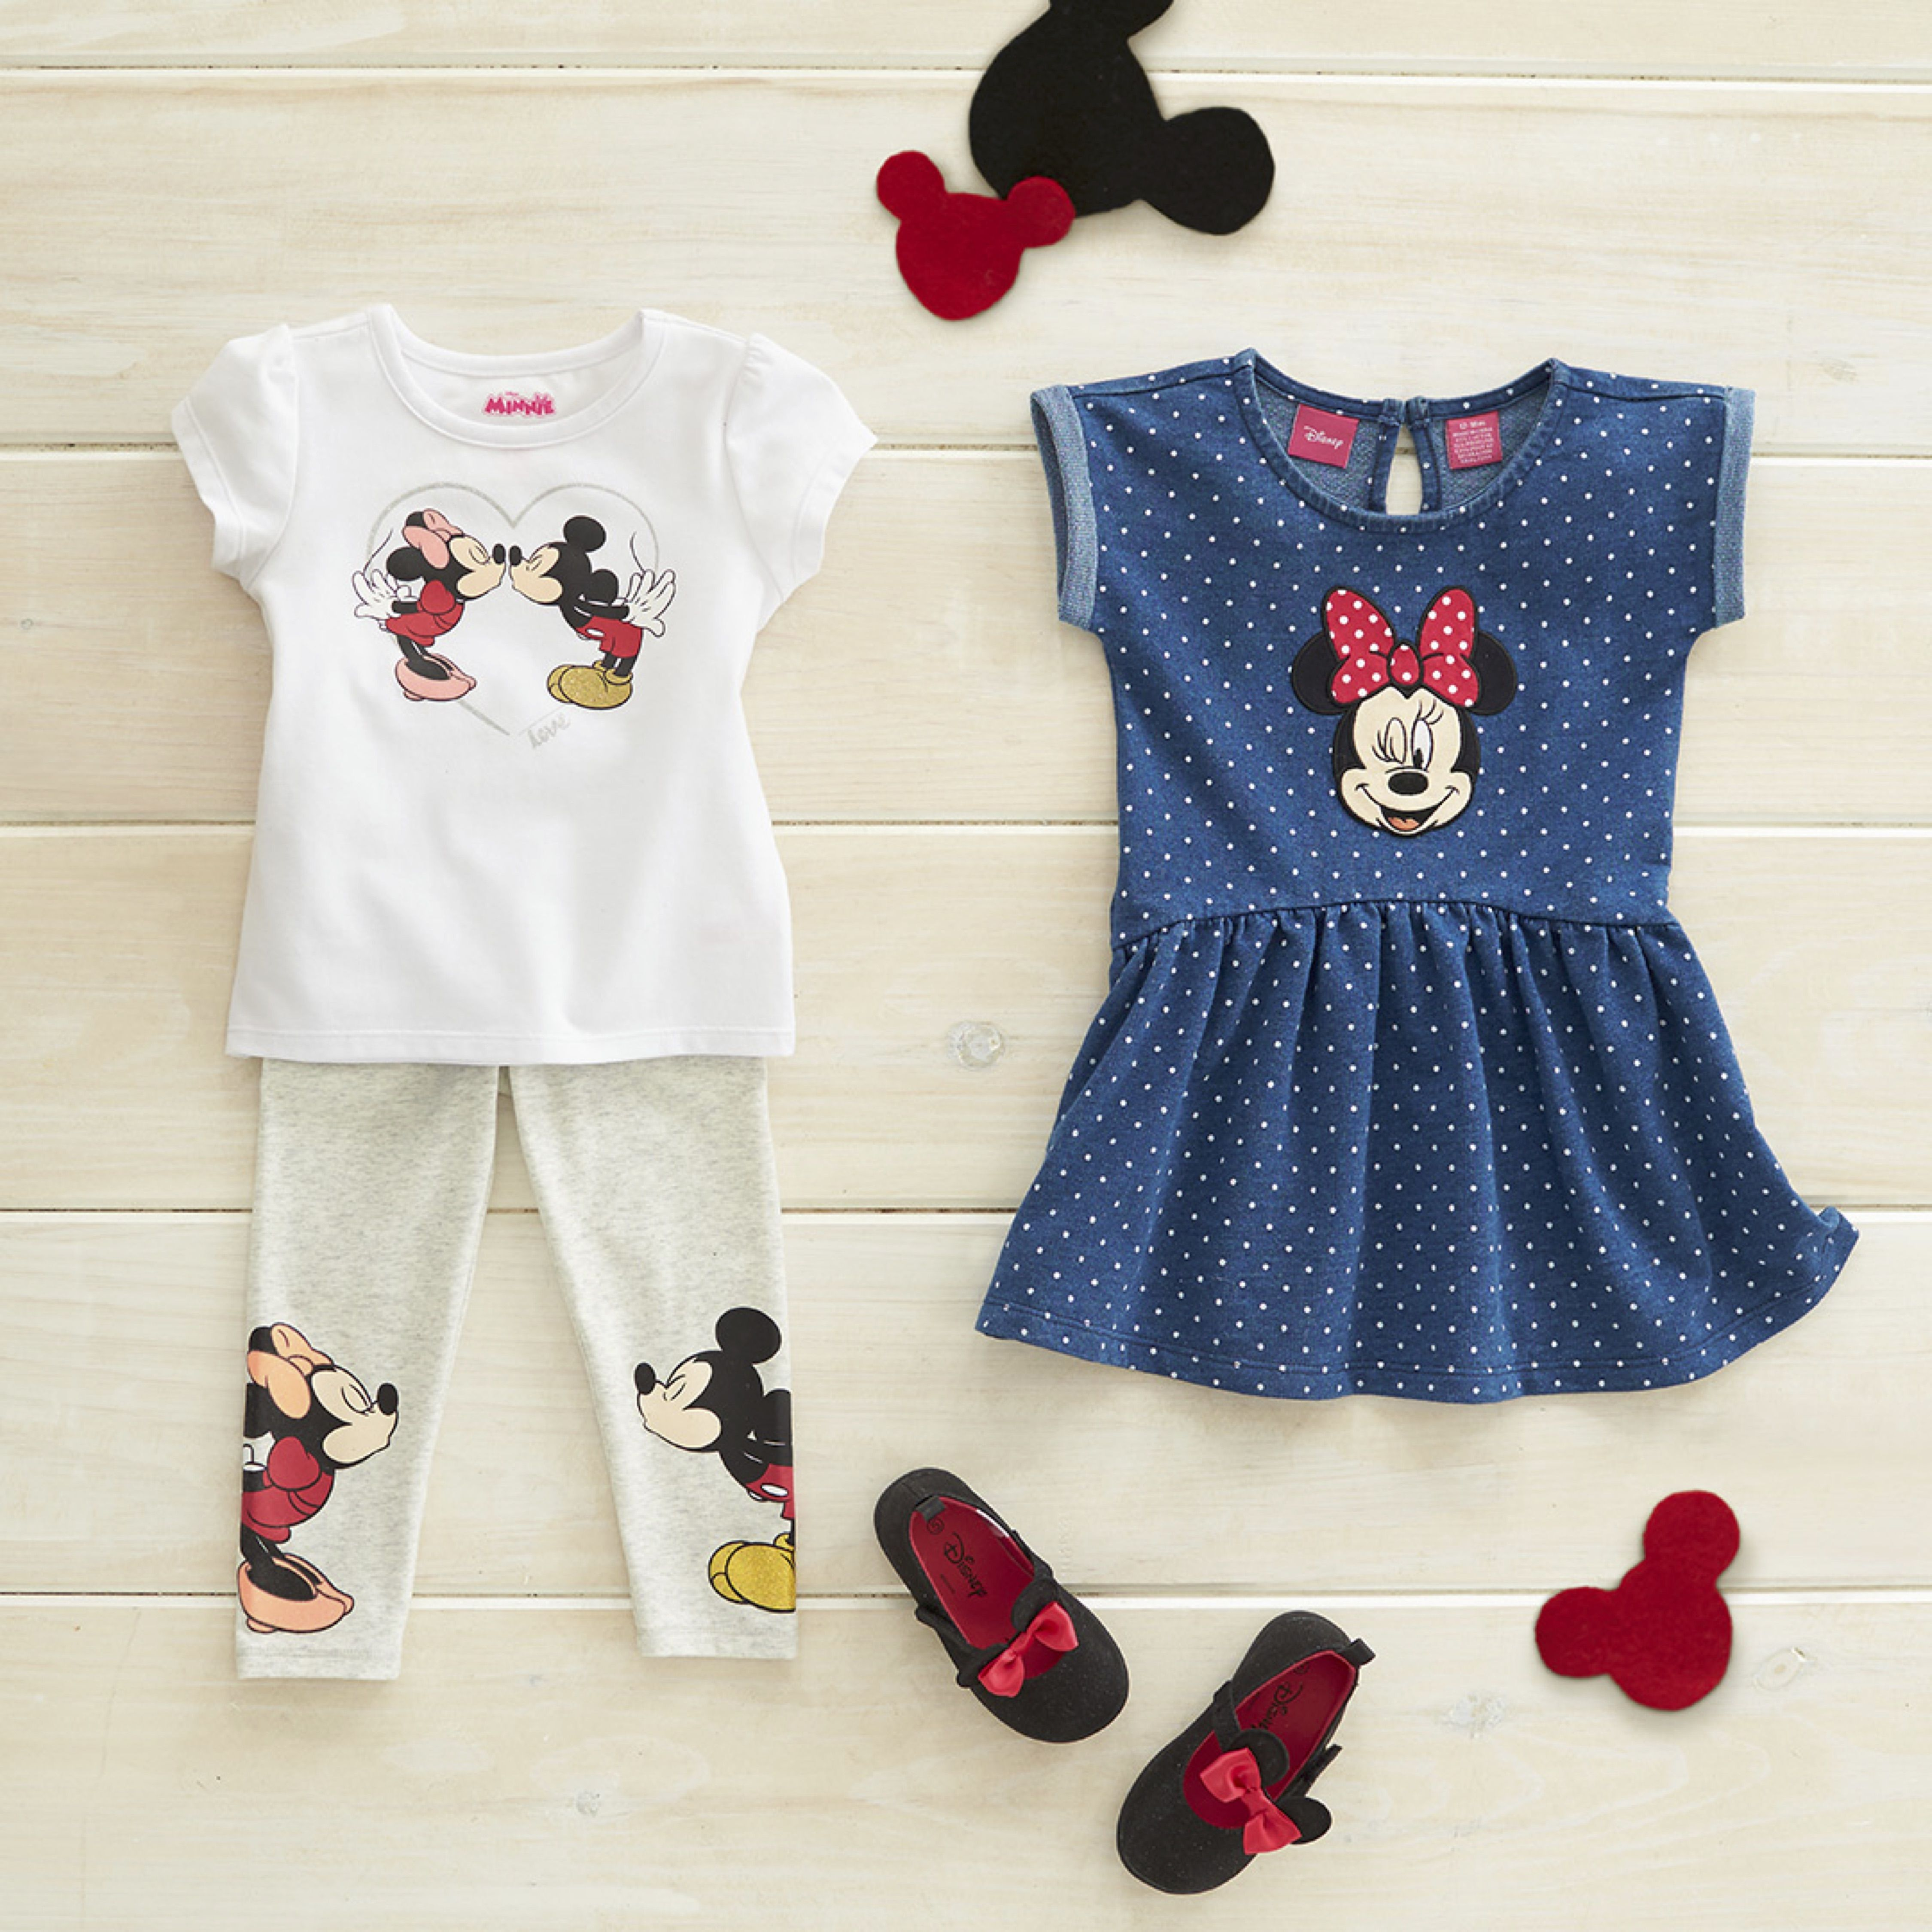 "Check out the Disney Baby fall collection at Babies""R""Us on sale now"